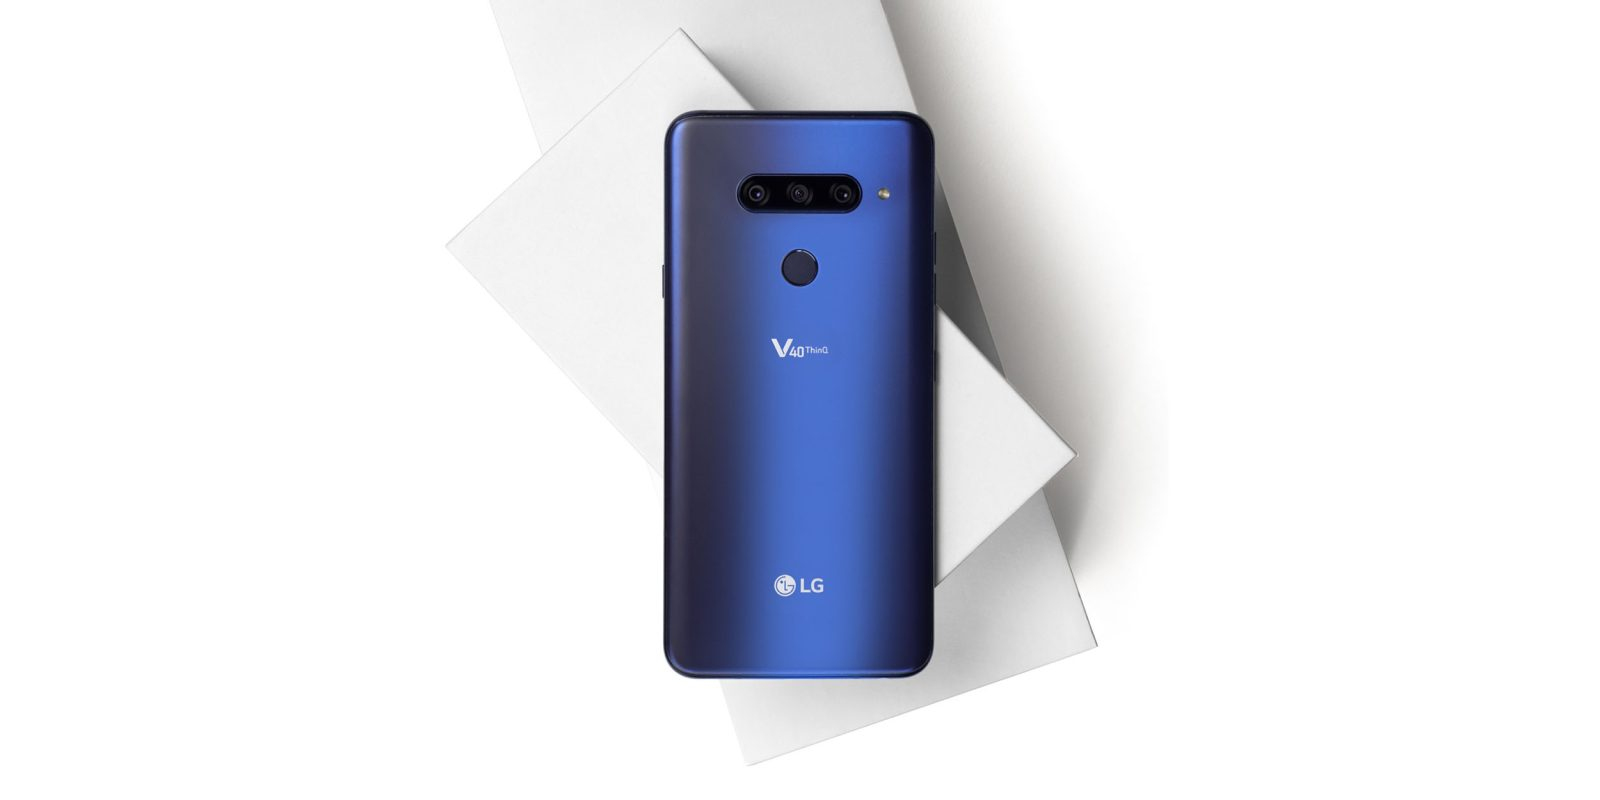 LG V40 ThinQ Review Roundup: Hard to recommend - 9to5Google